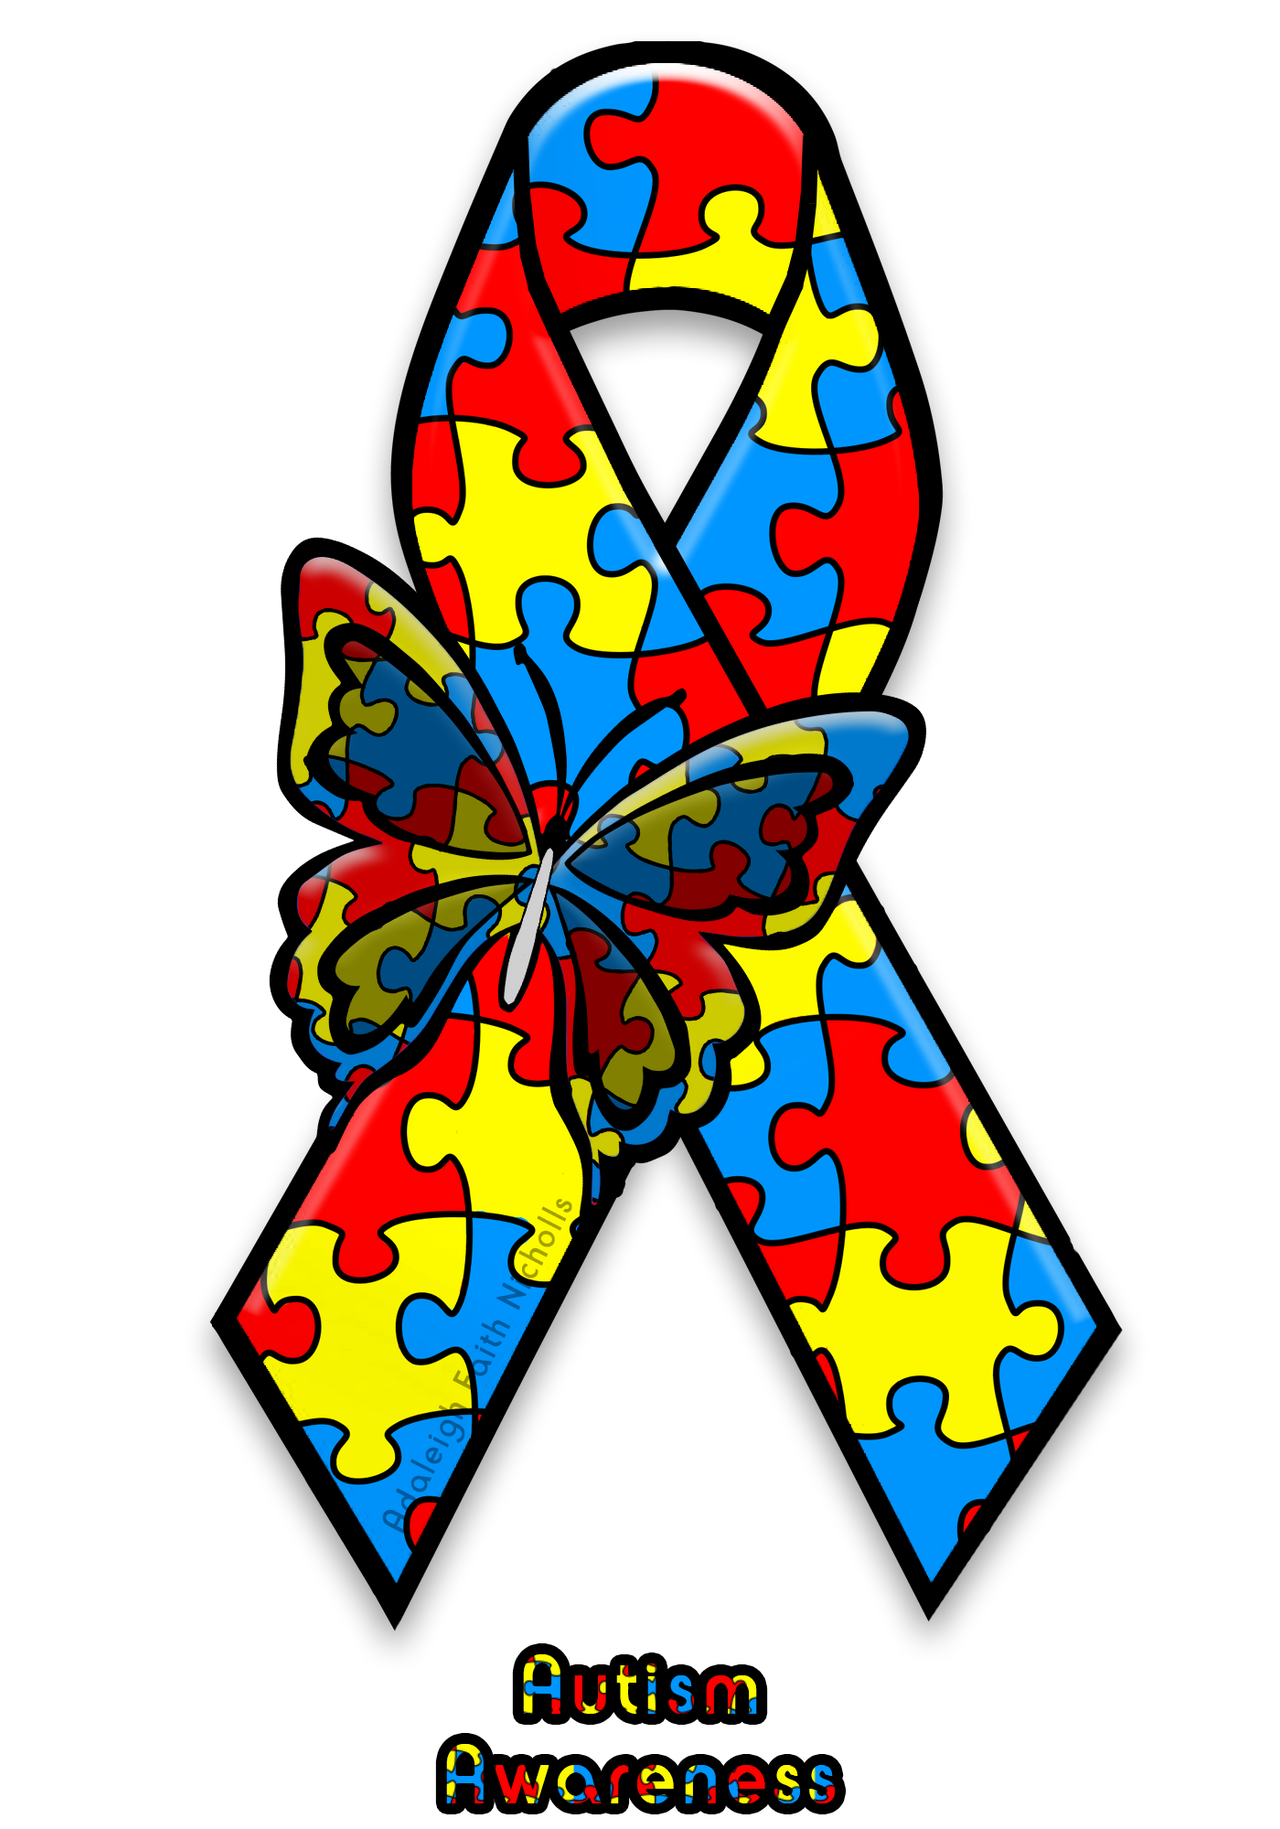 Autism Awareness Ribbon By Adaleighfaith On Deviantart